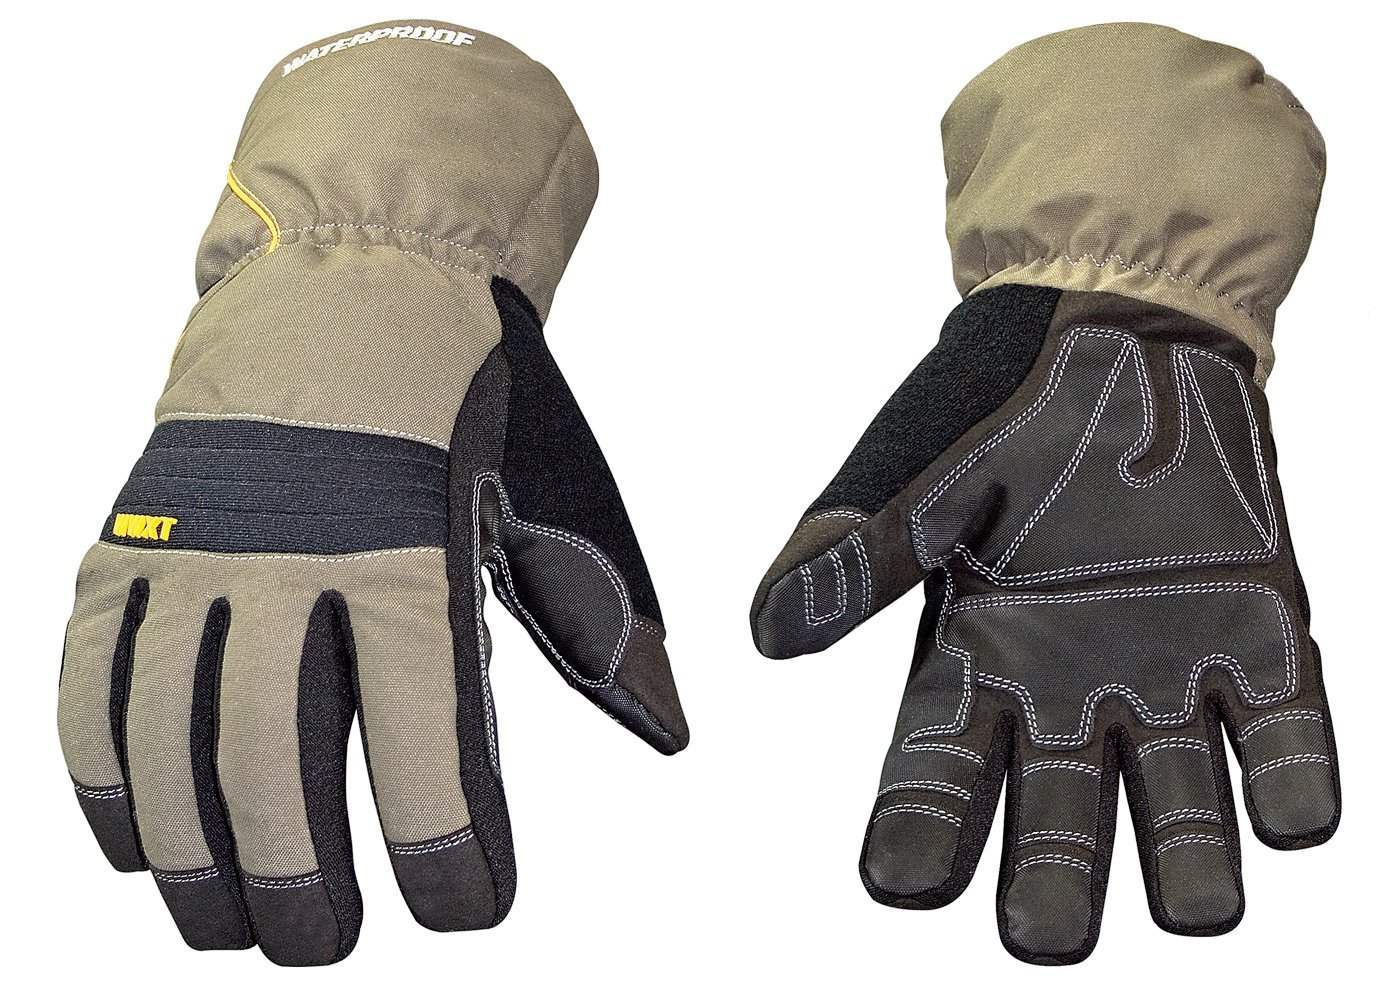 Youngstown Glove 11-3460-60-M Waterproof Winter XT 200 gram Thinsulate Waterproof Glove, Gray and Black, Medium by